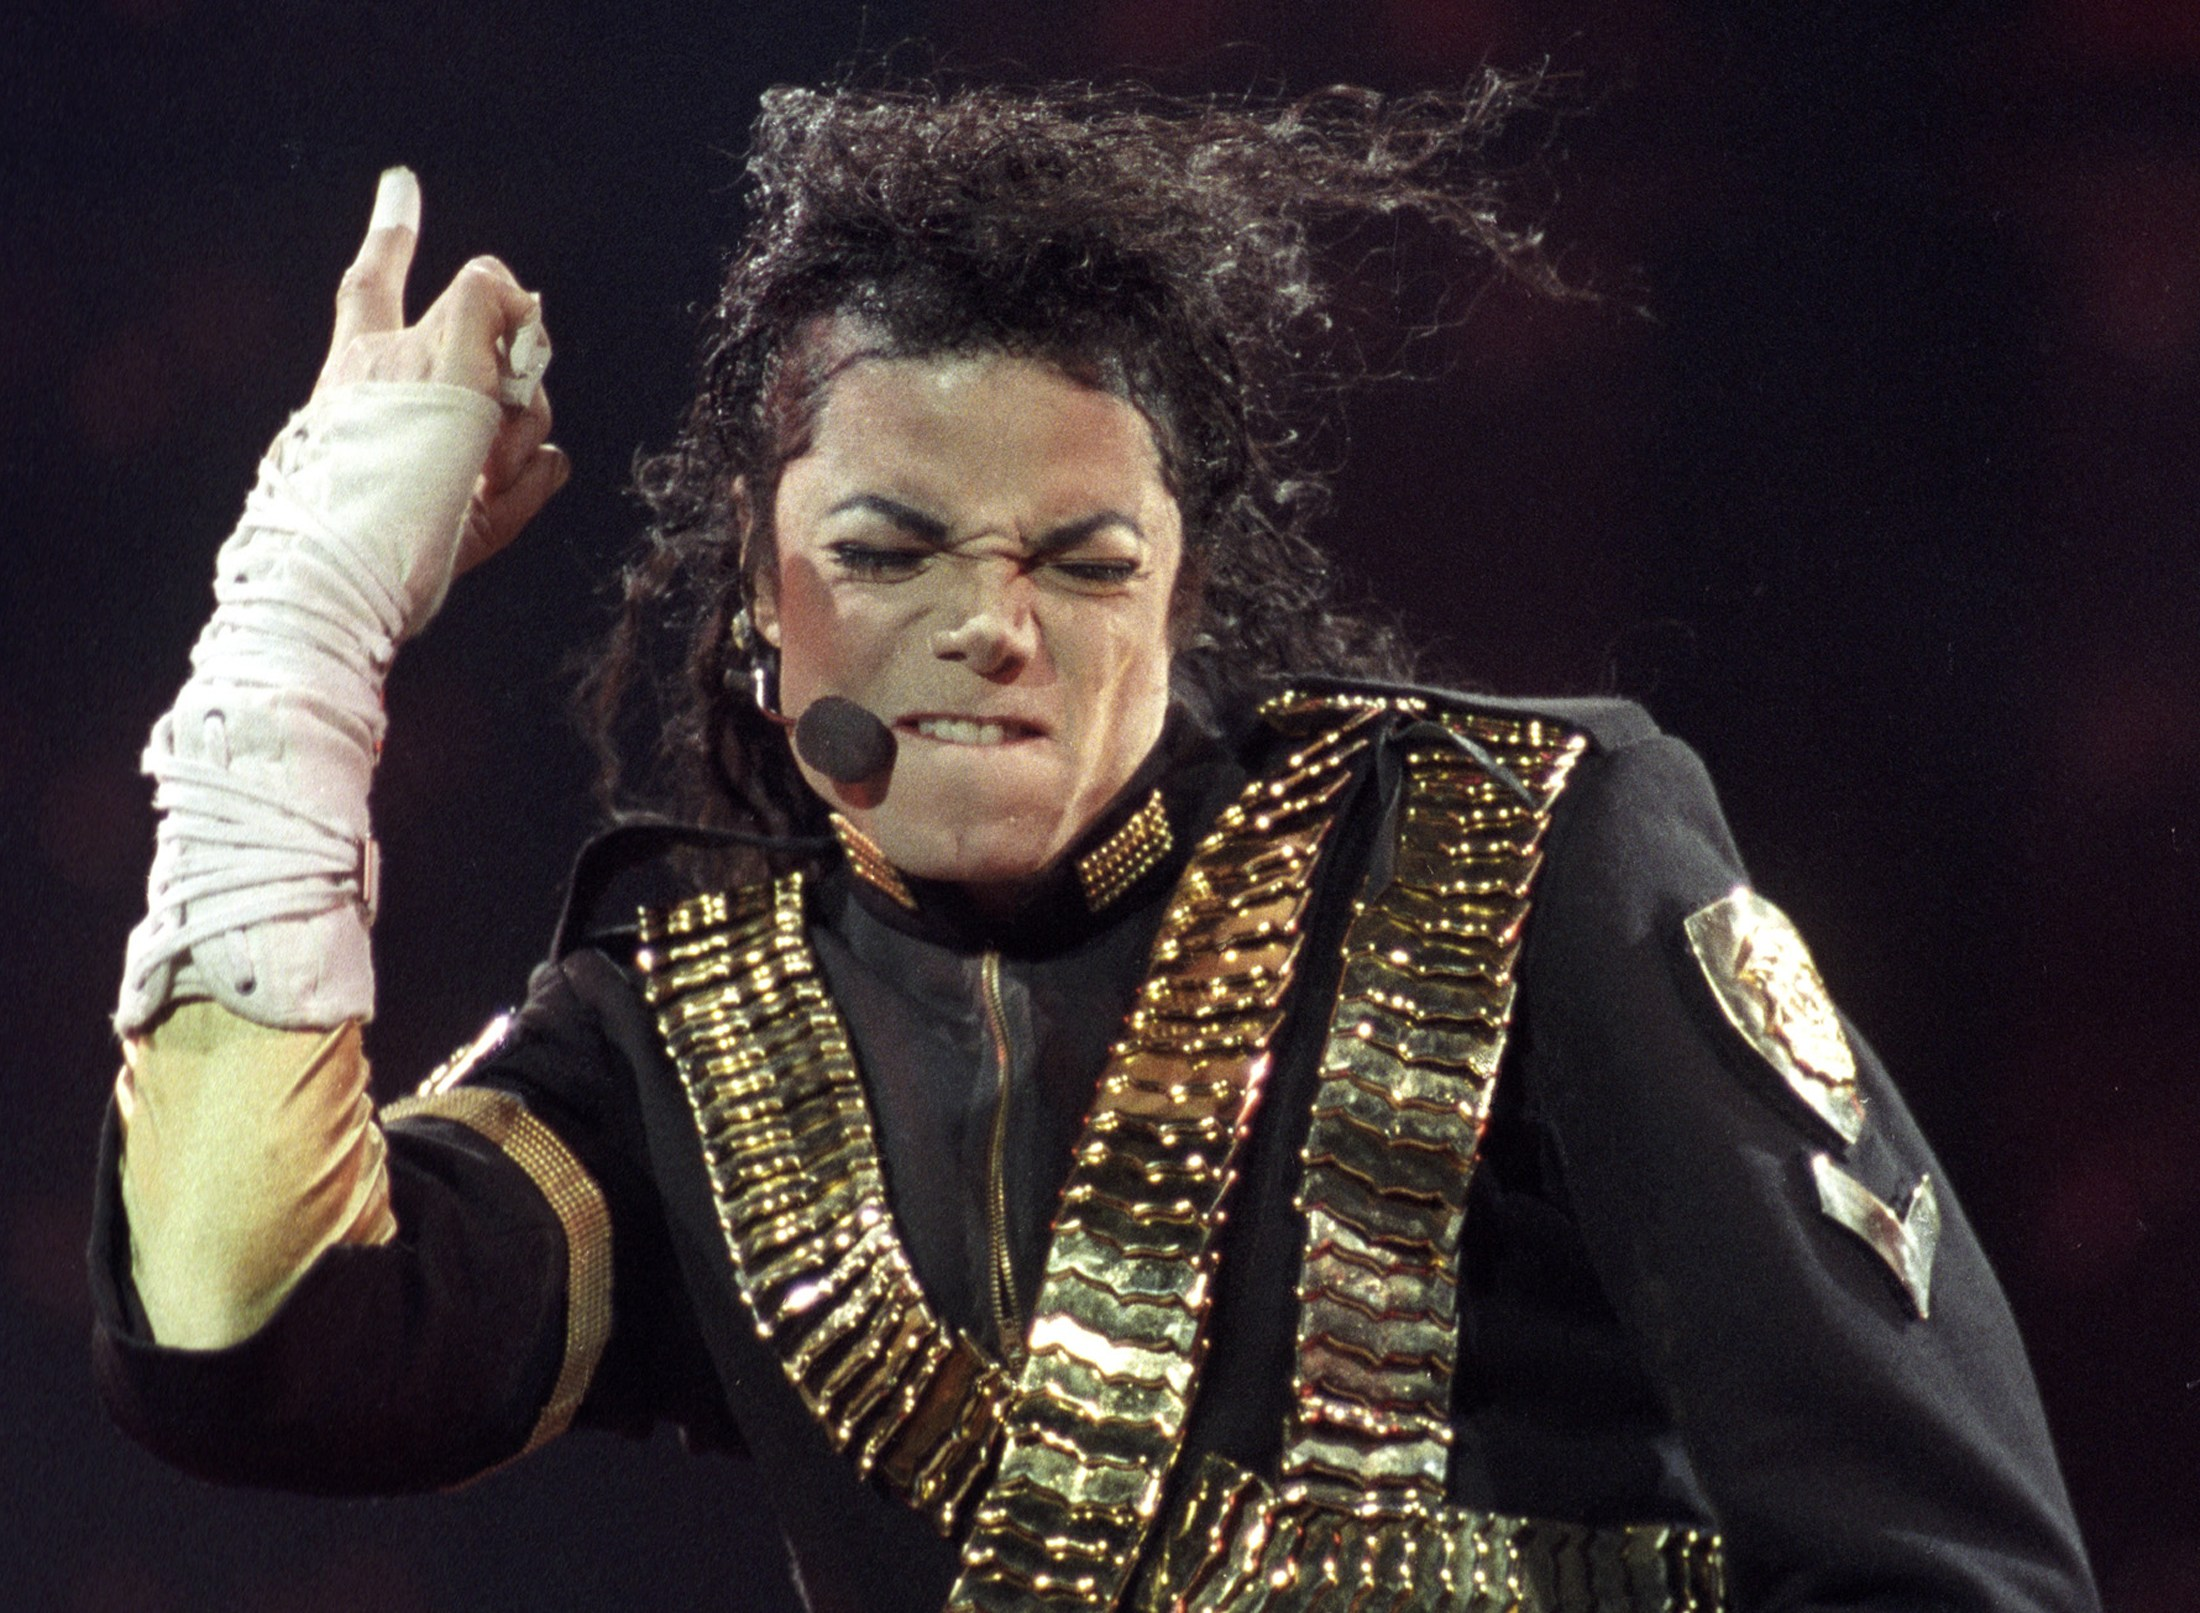 Michael Jackson stored DNA to create clones?